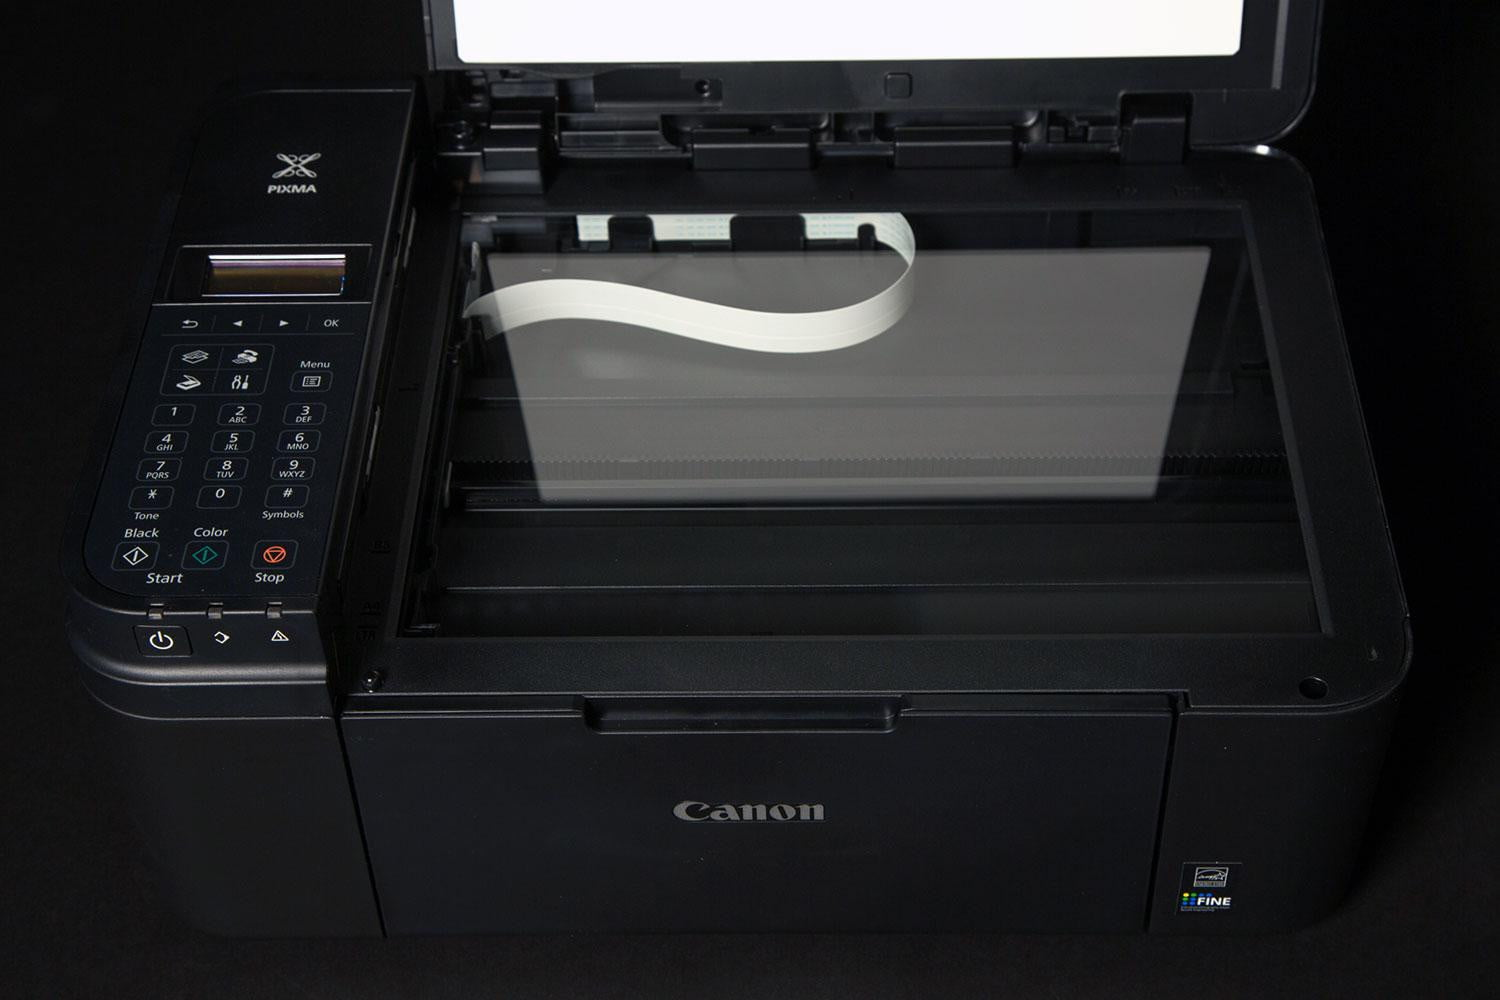 canno mg2360 printer how to connect to wifi